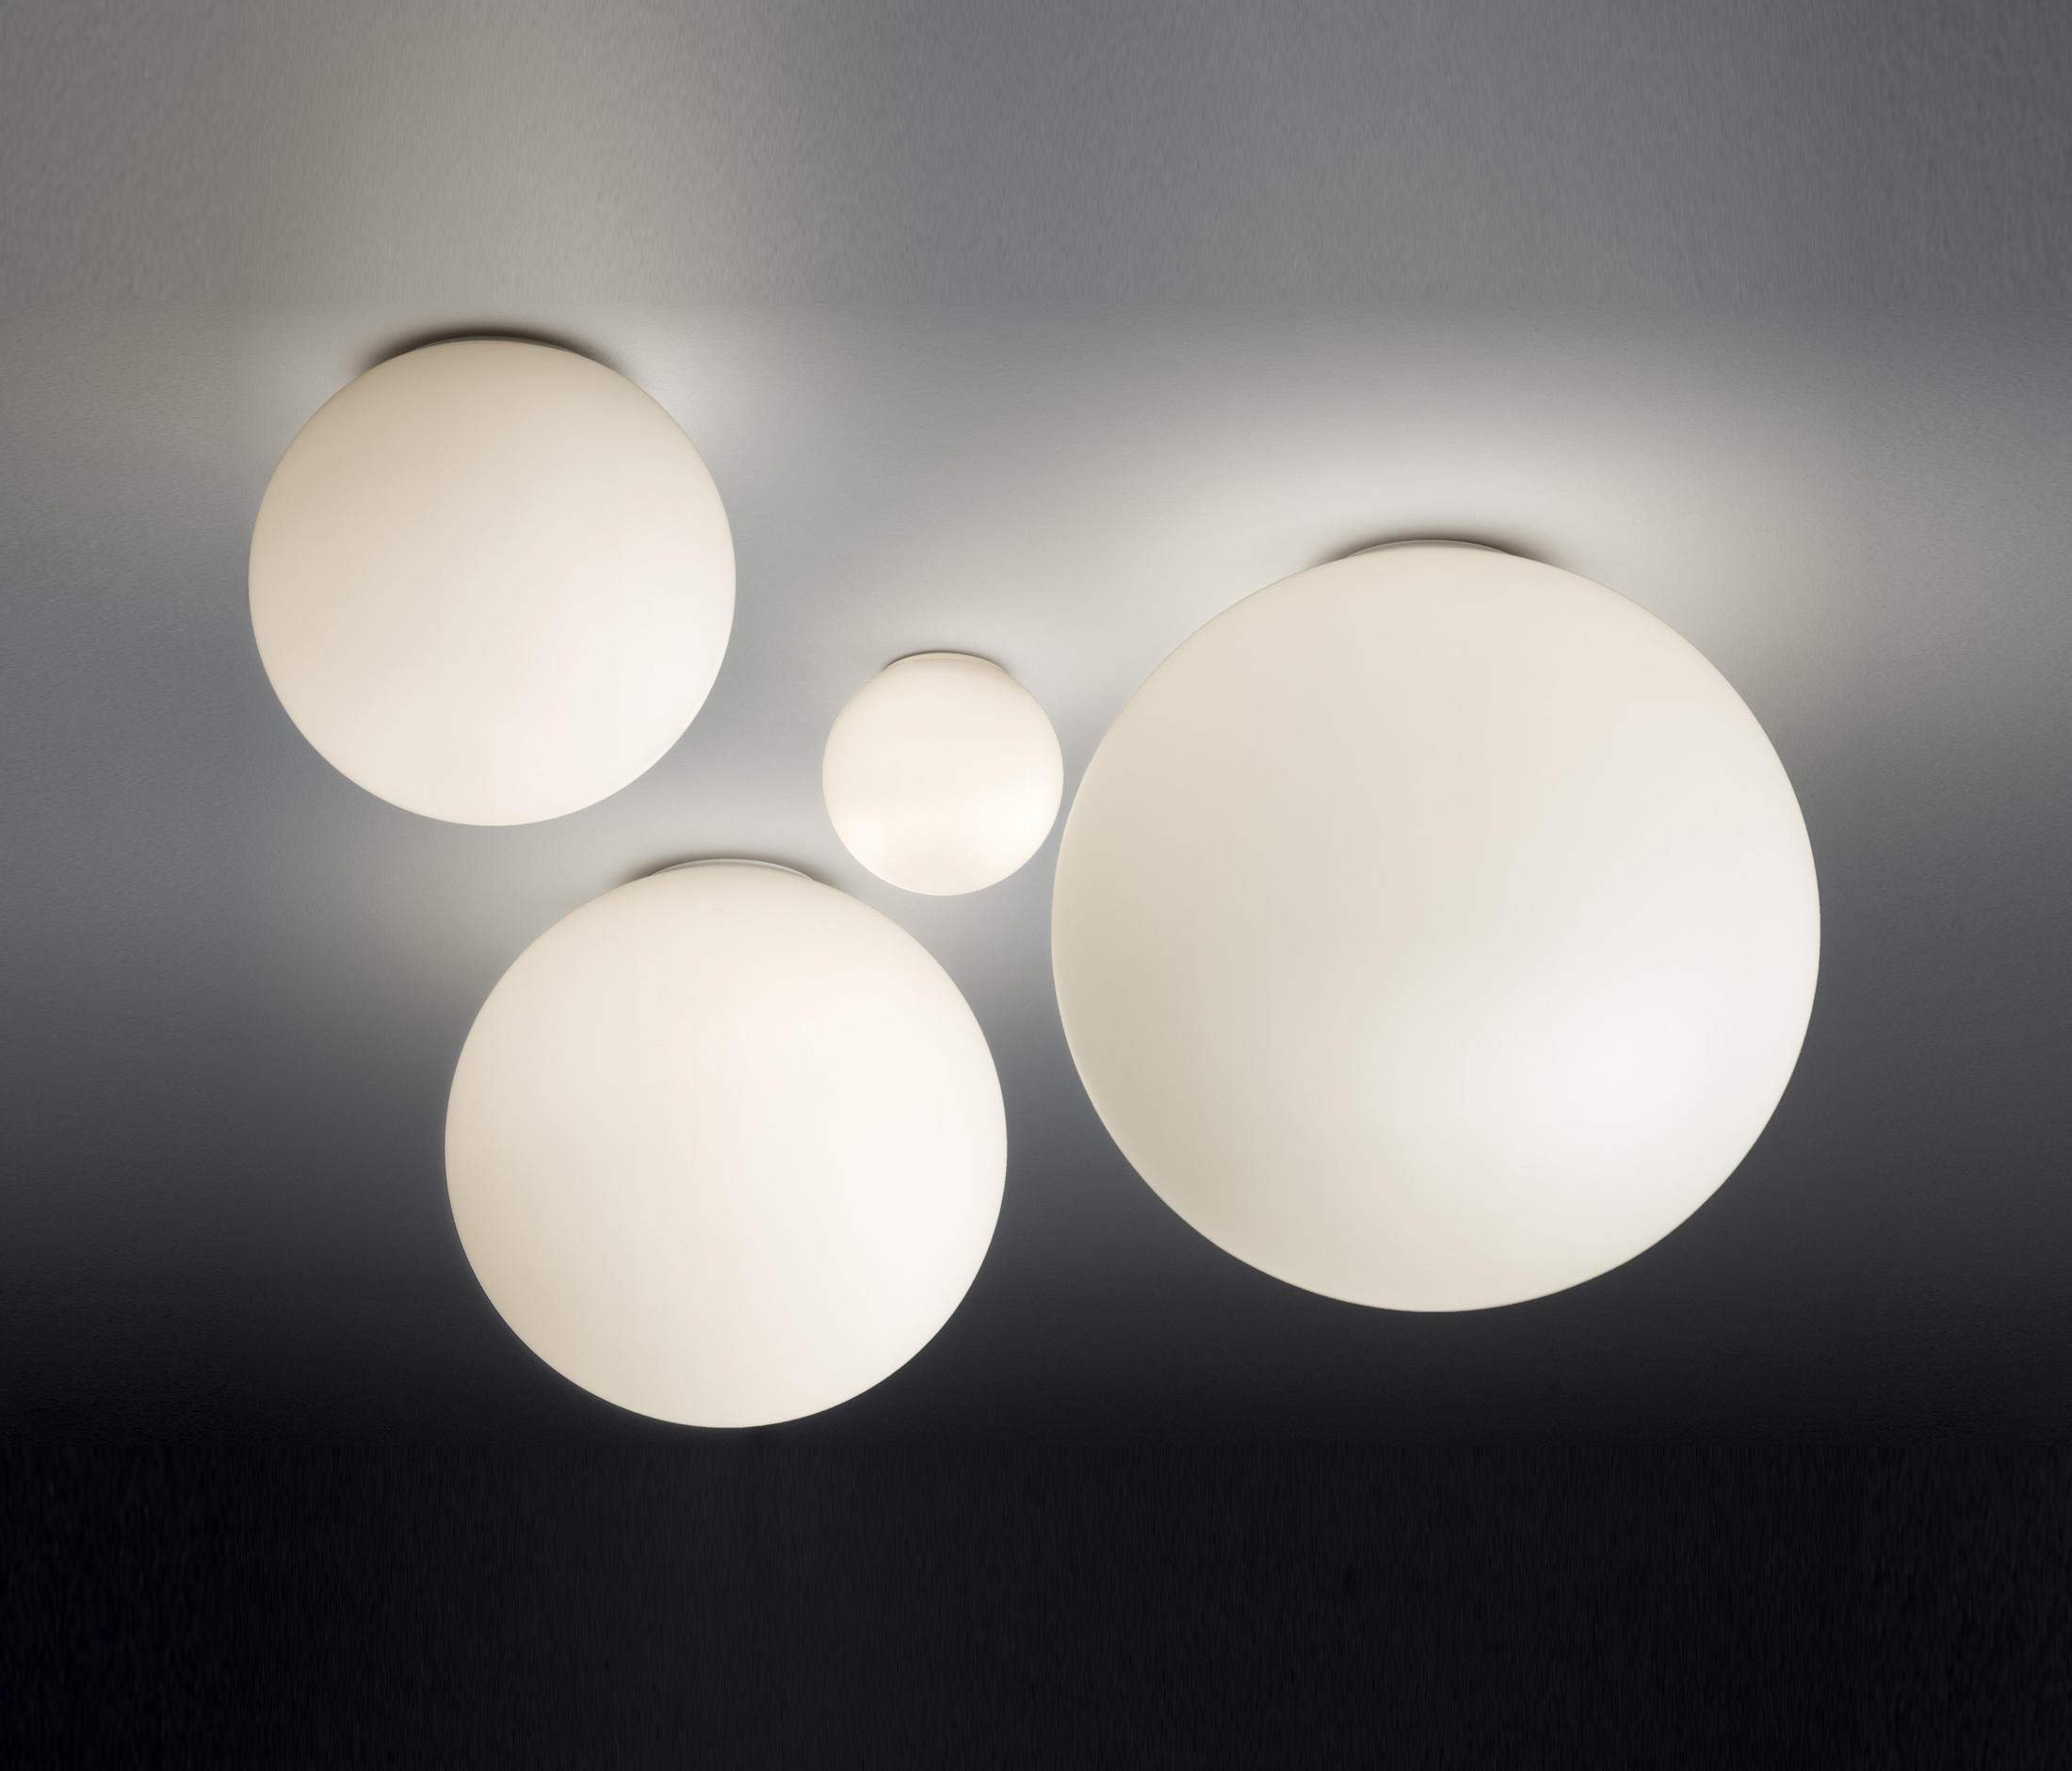 dioscuri ceiling lamp general lighting from artemide architonic. Black Bedroom Furniture Sets. Home Design Ideas